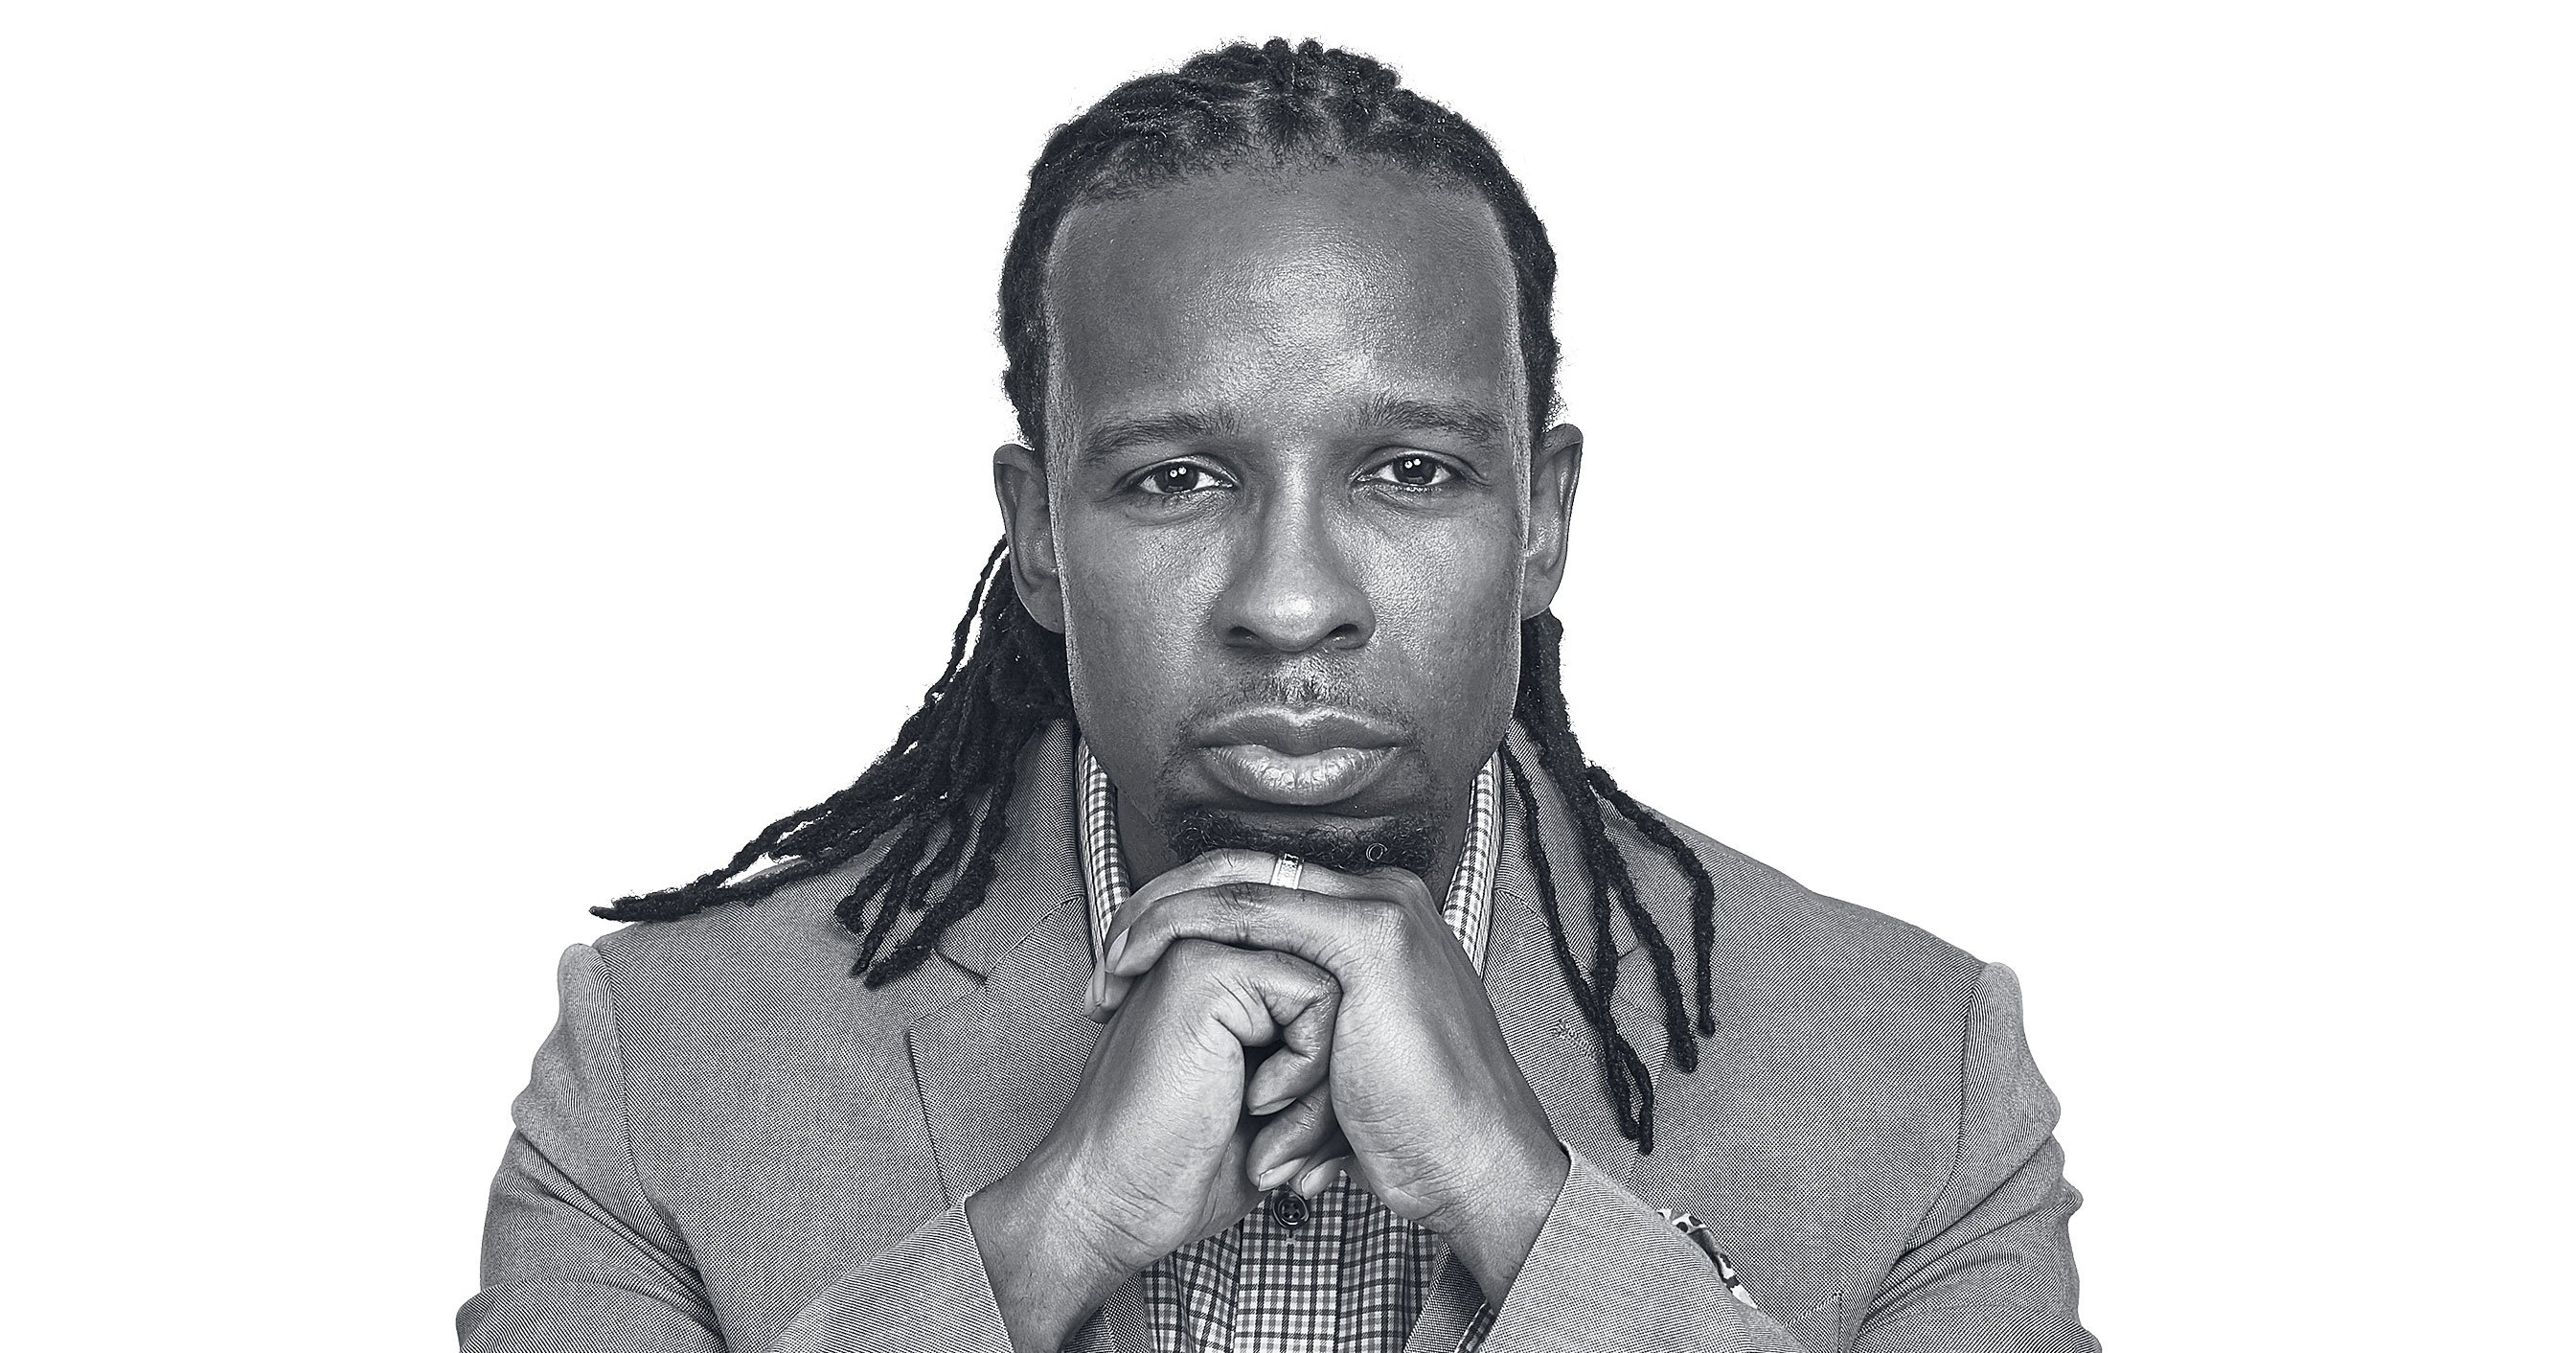 Interview: Ibram X. Kendi Takes a Hard Look at Racism—and Himself